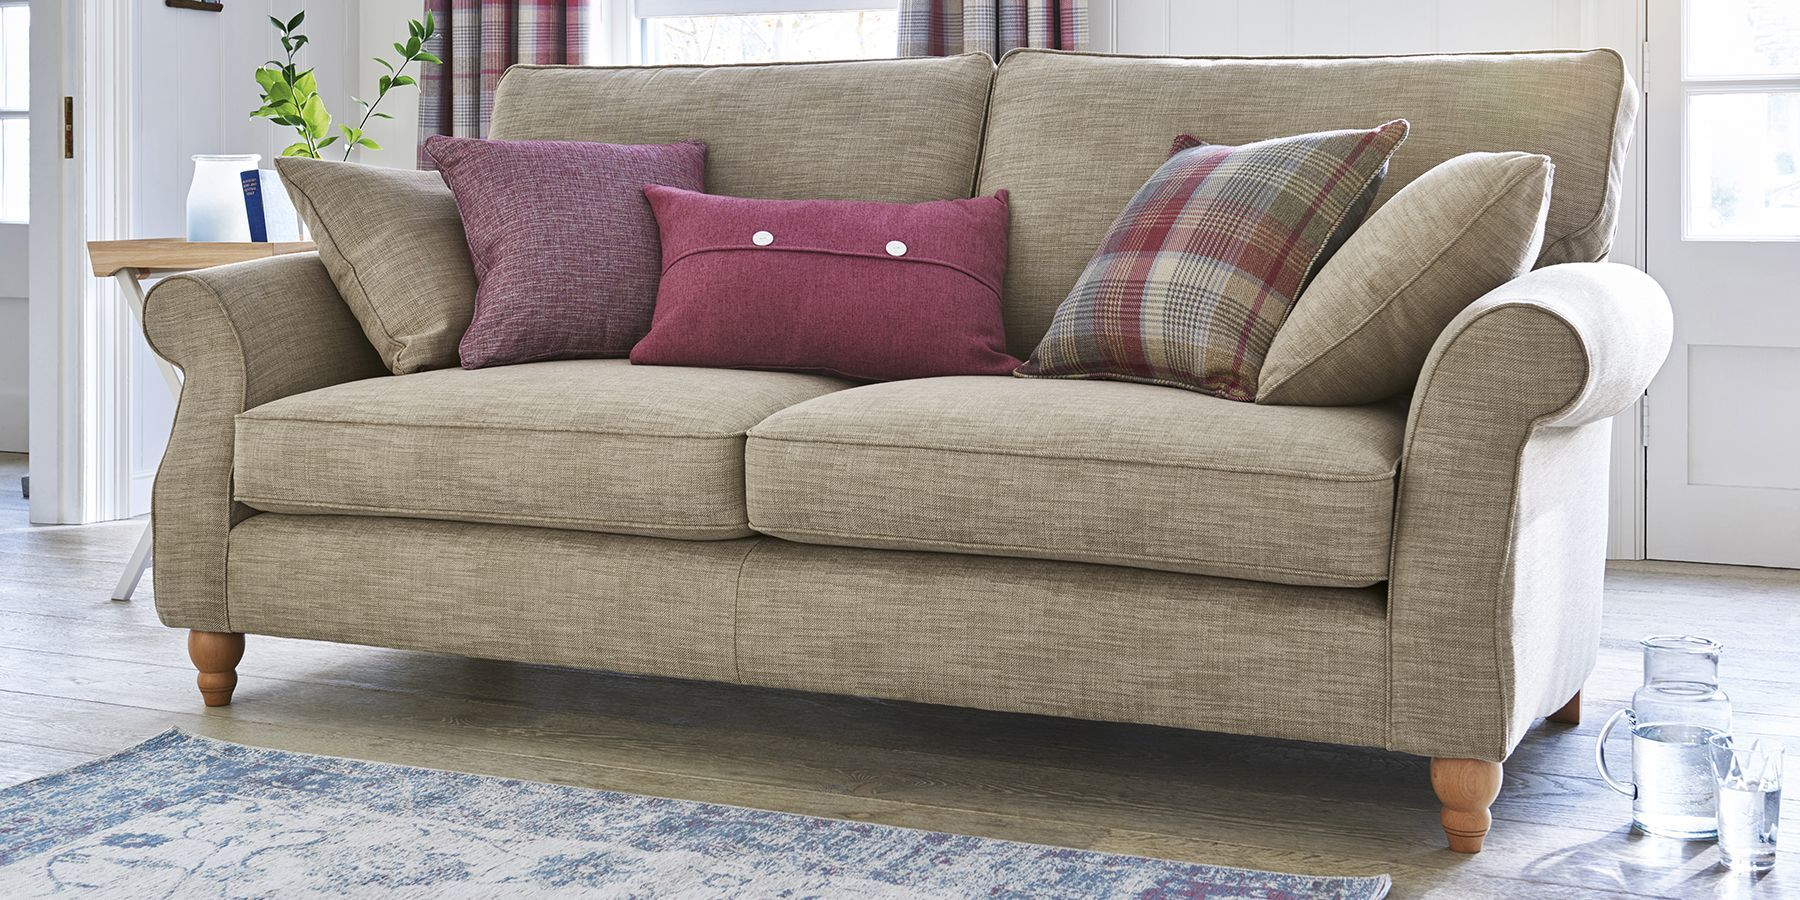 ashford sofa boston interiors shabby chic sofas and loveseats next arm covers simple minimalist home ideas